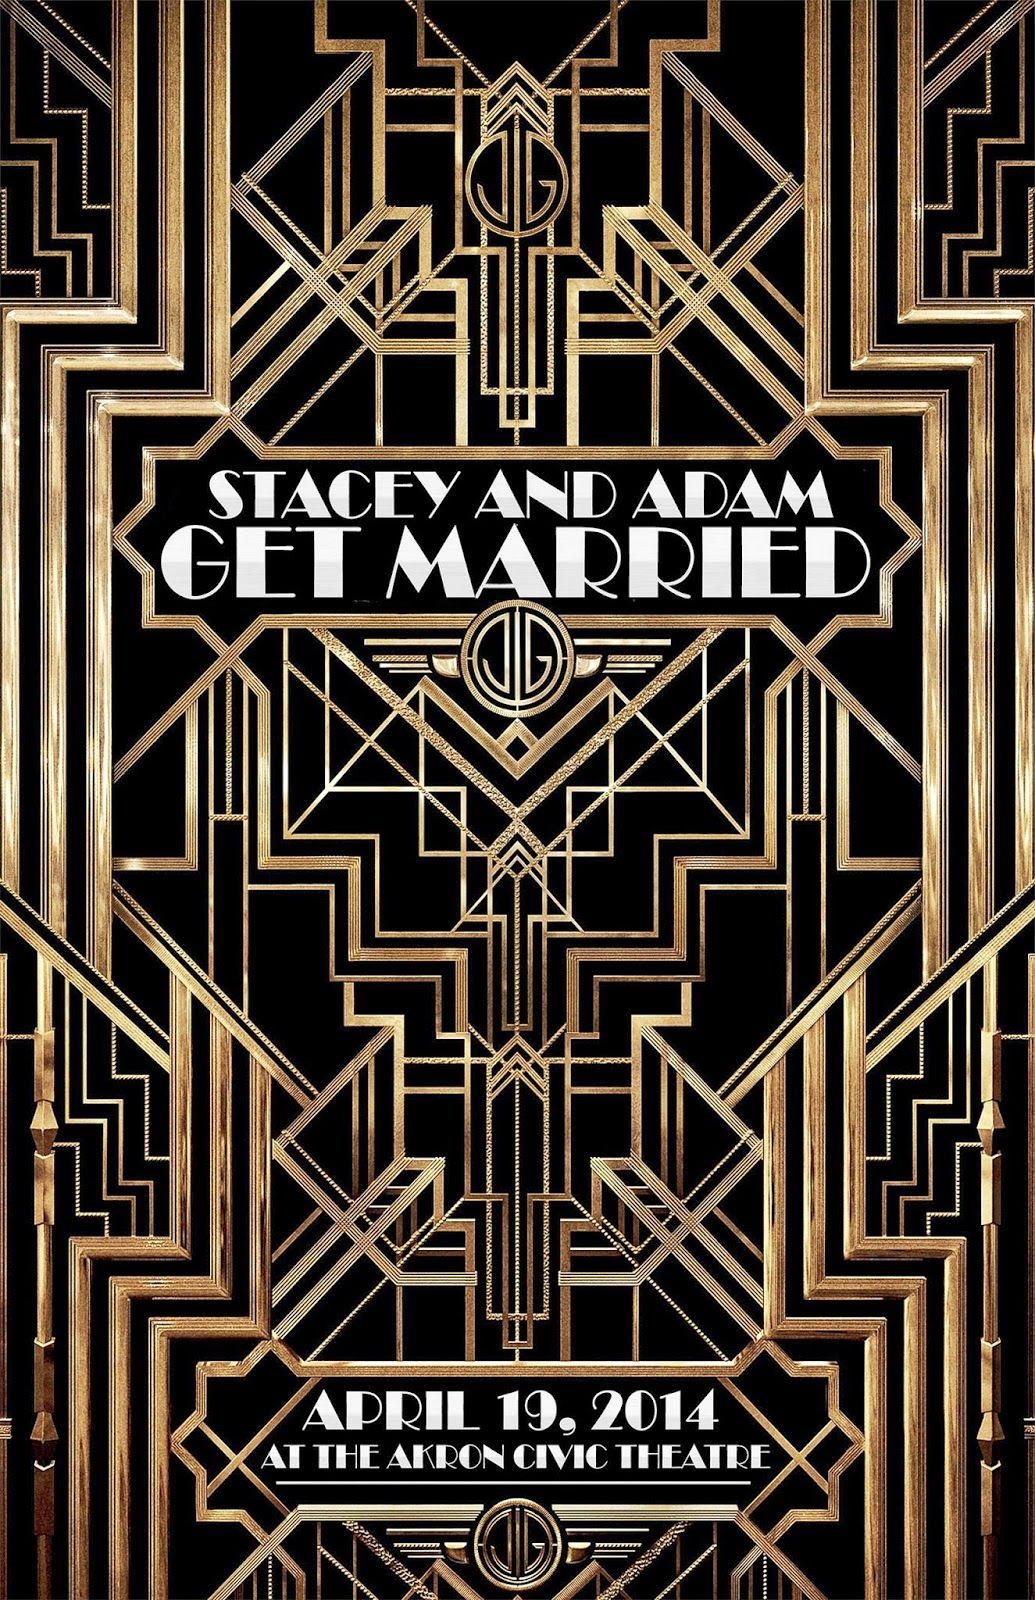 The Great Gatsby Flyer Fully Editable Design Imitating The